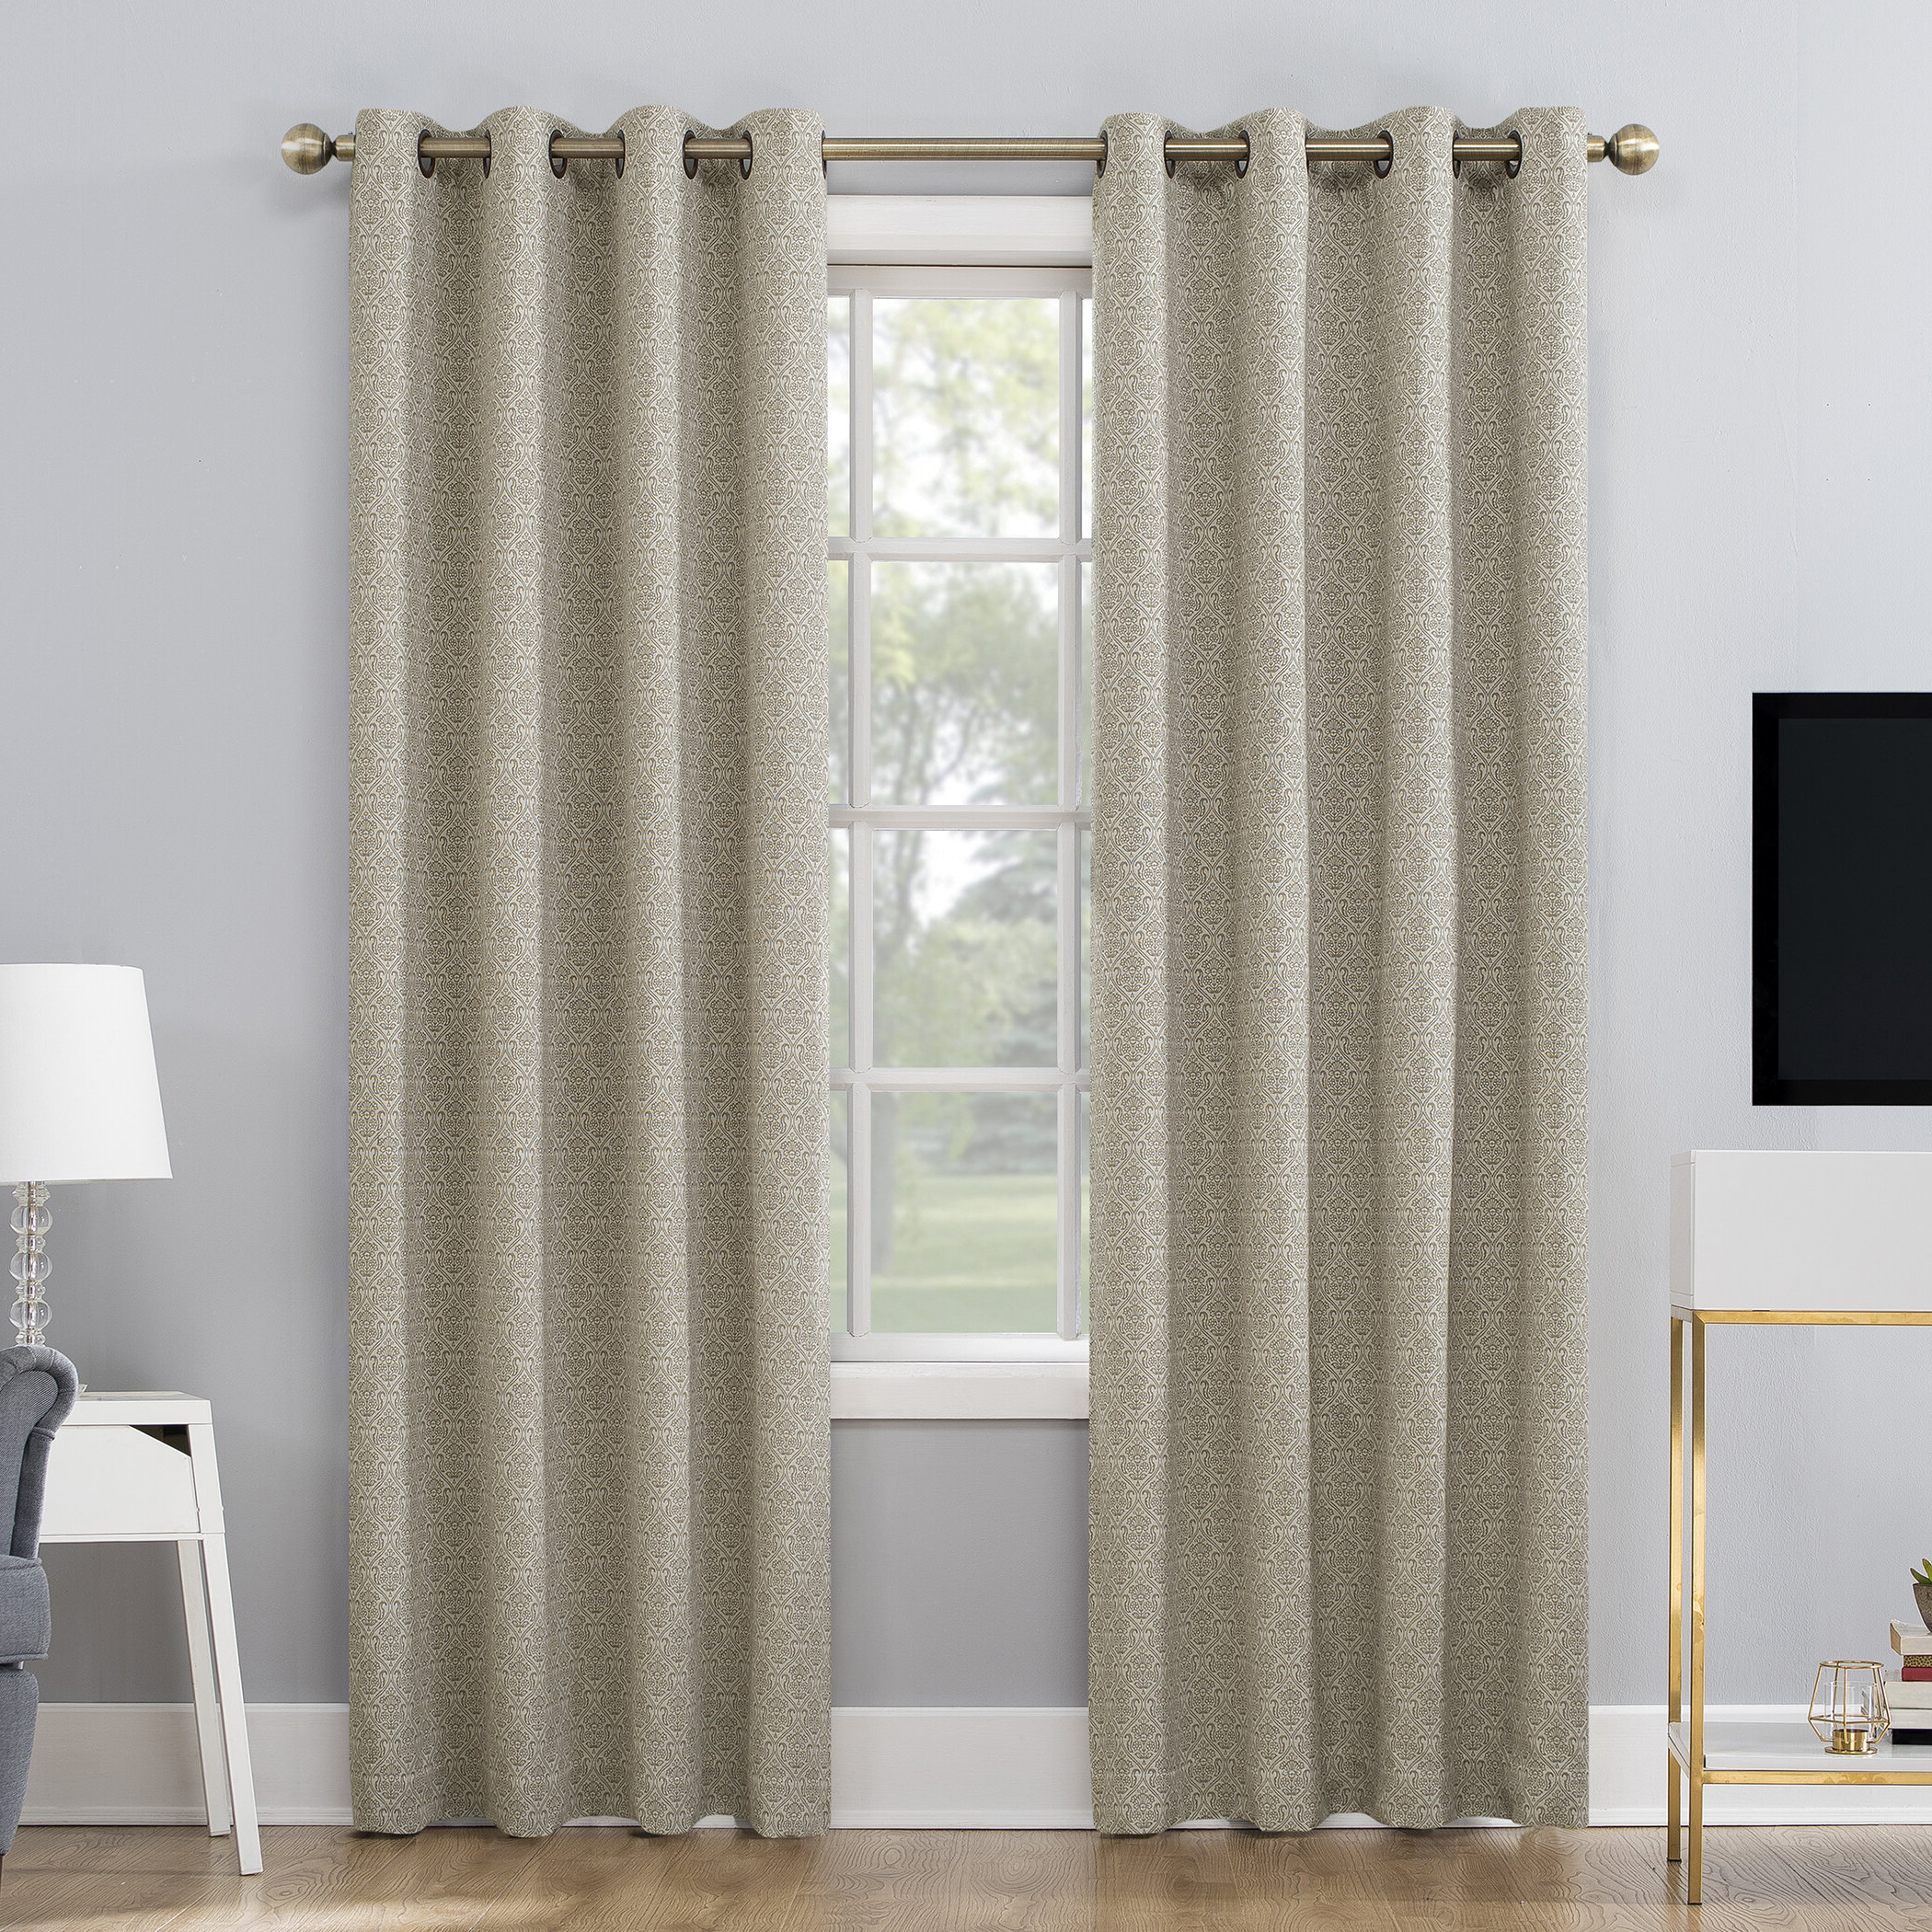 Maritza Jacquard Damask Max Blackout Thermal Grommet Curtain Panels Intended For Well Known Duran Thermal Insulated Blackout Grommet Curtain Panels (View 13 of 21)